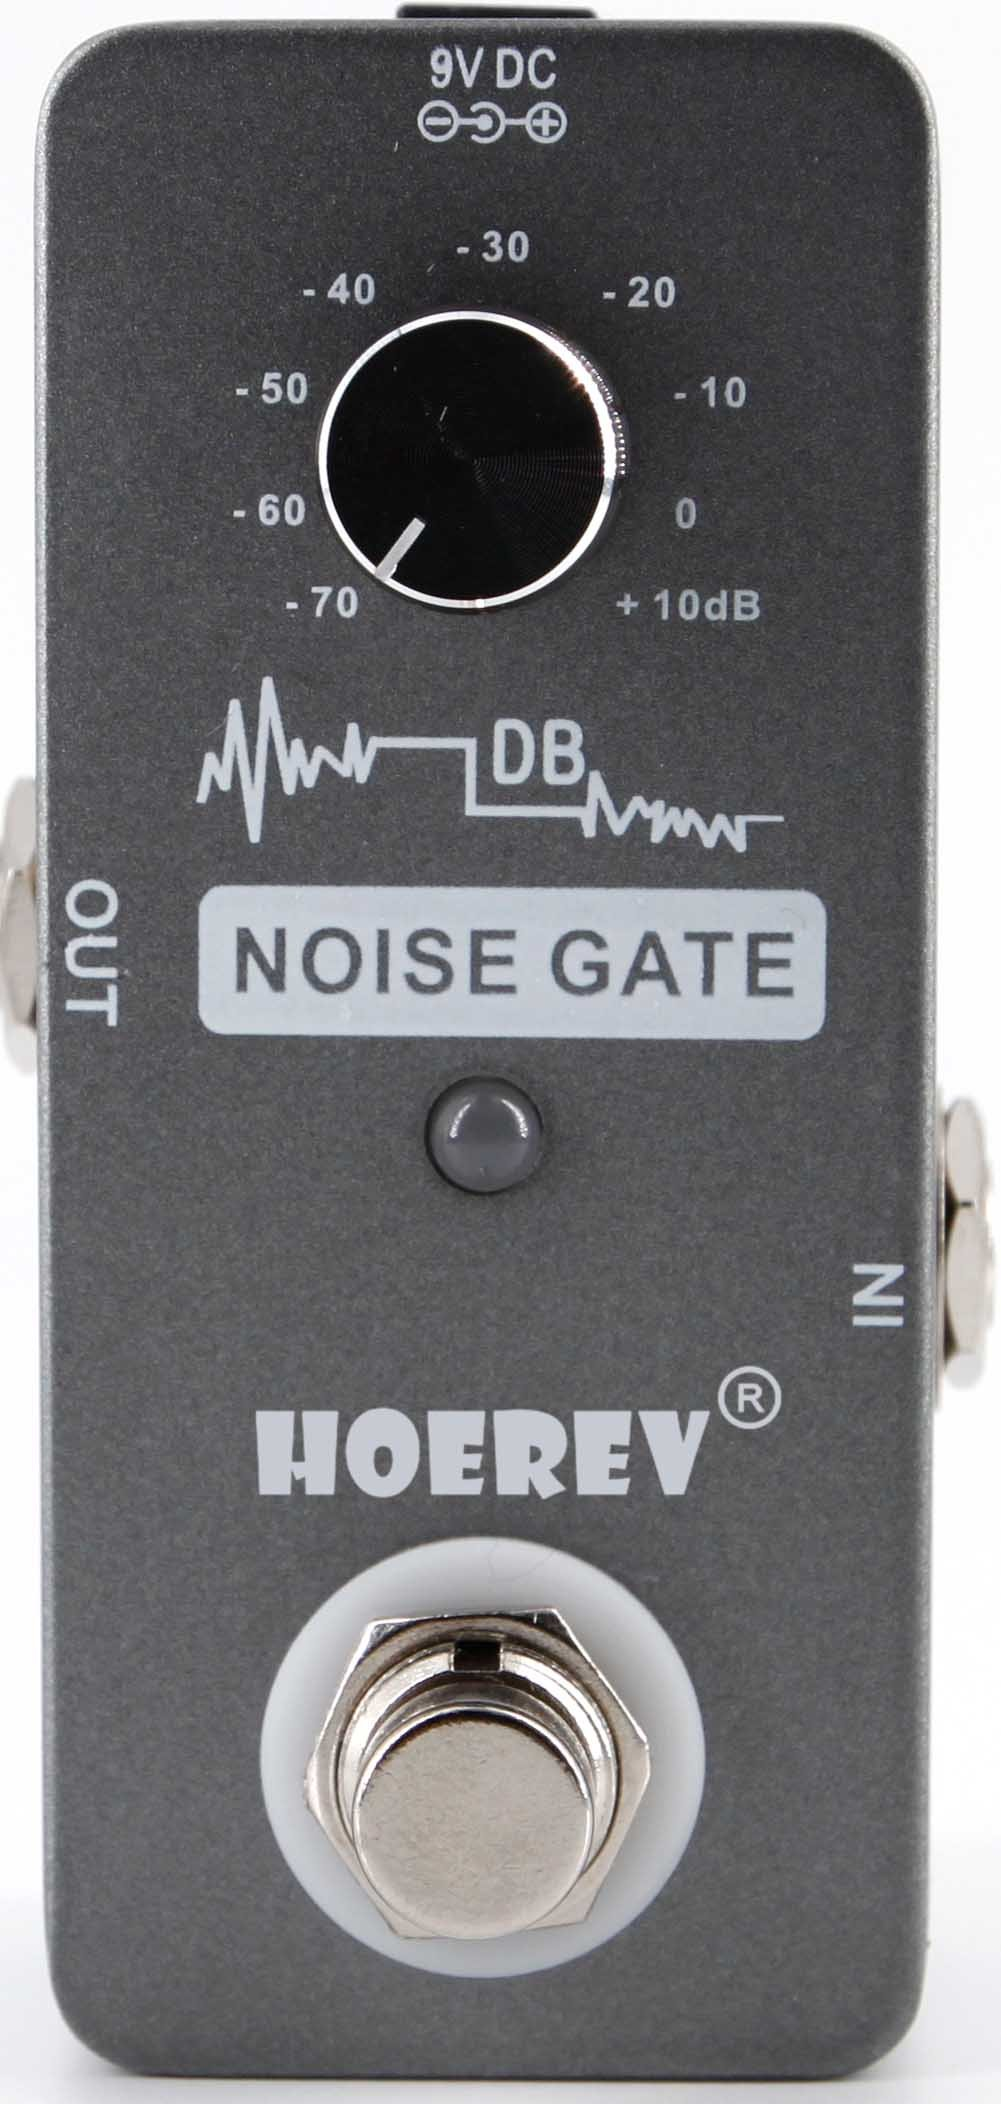 Noise Gate For Guitar And Bass Noise Reduction,With High Sensitivity Noise Gate Controller